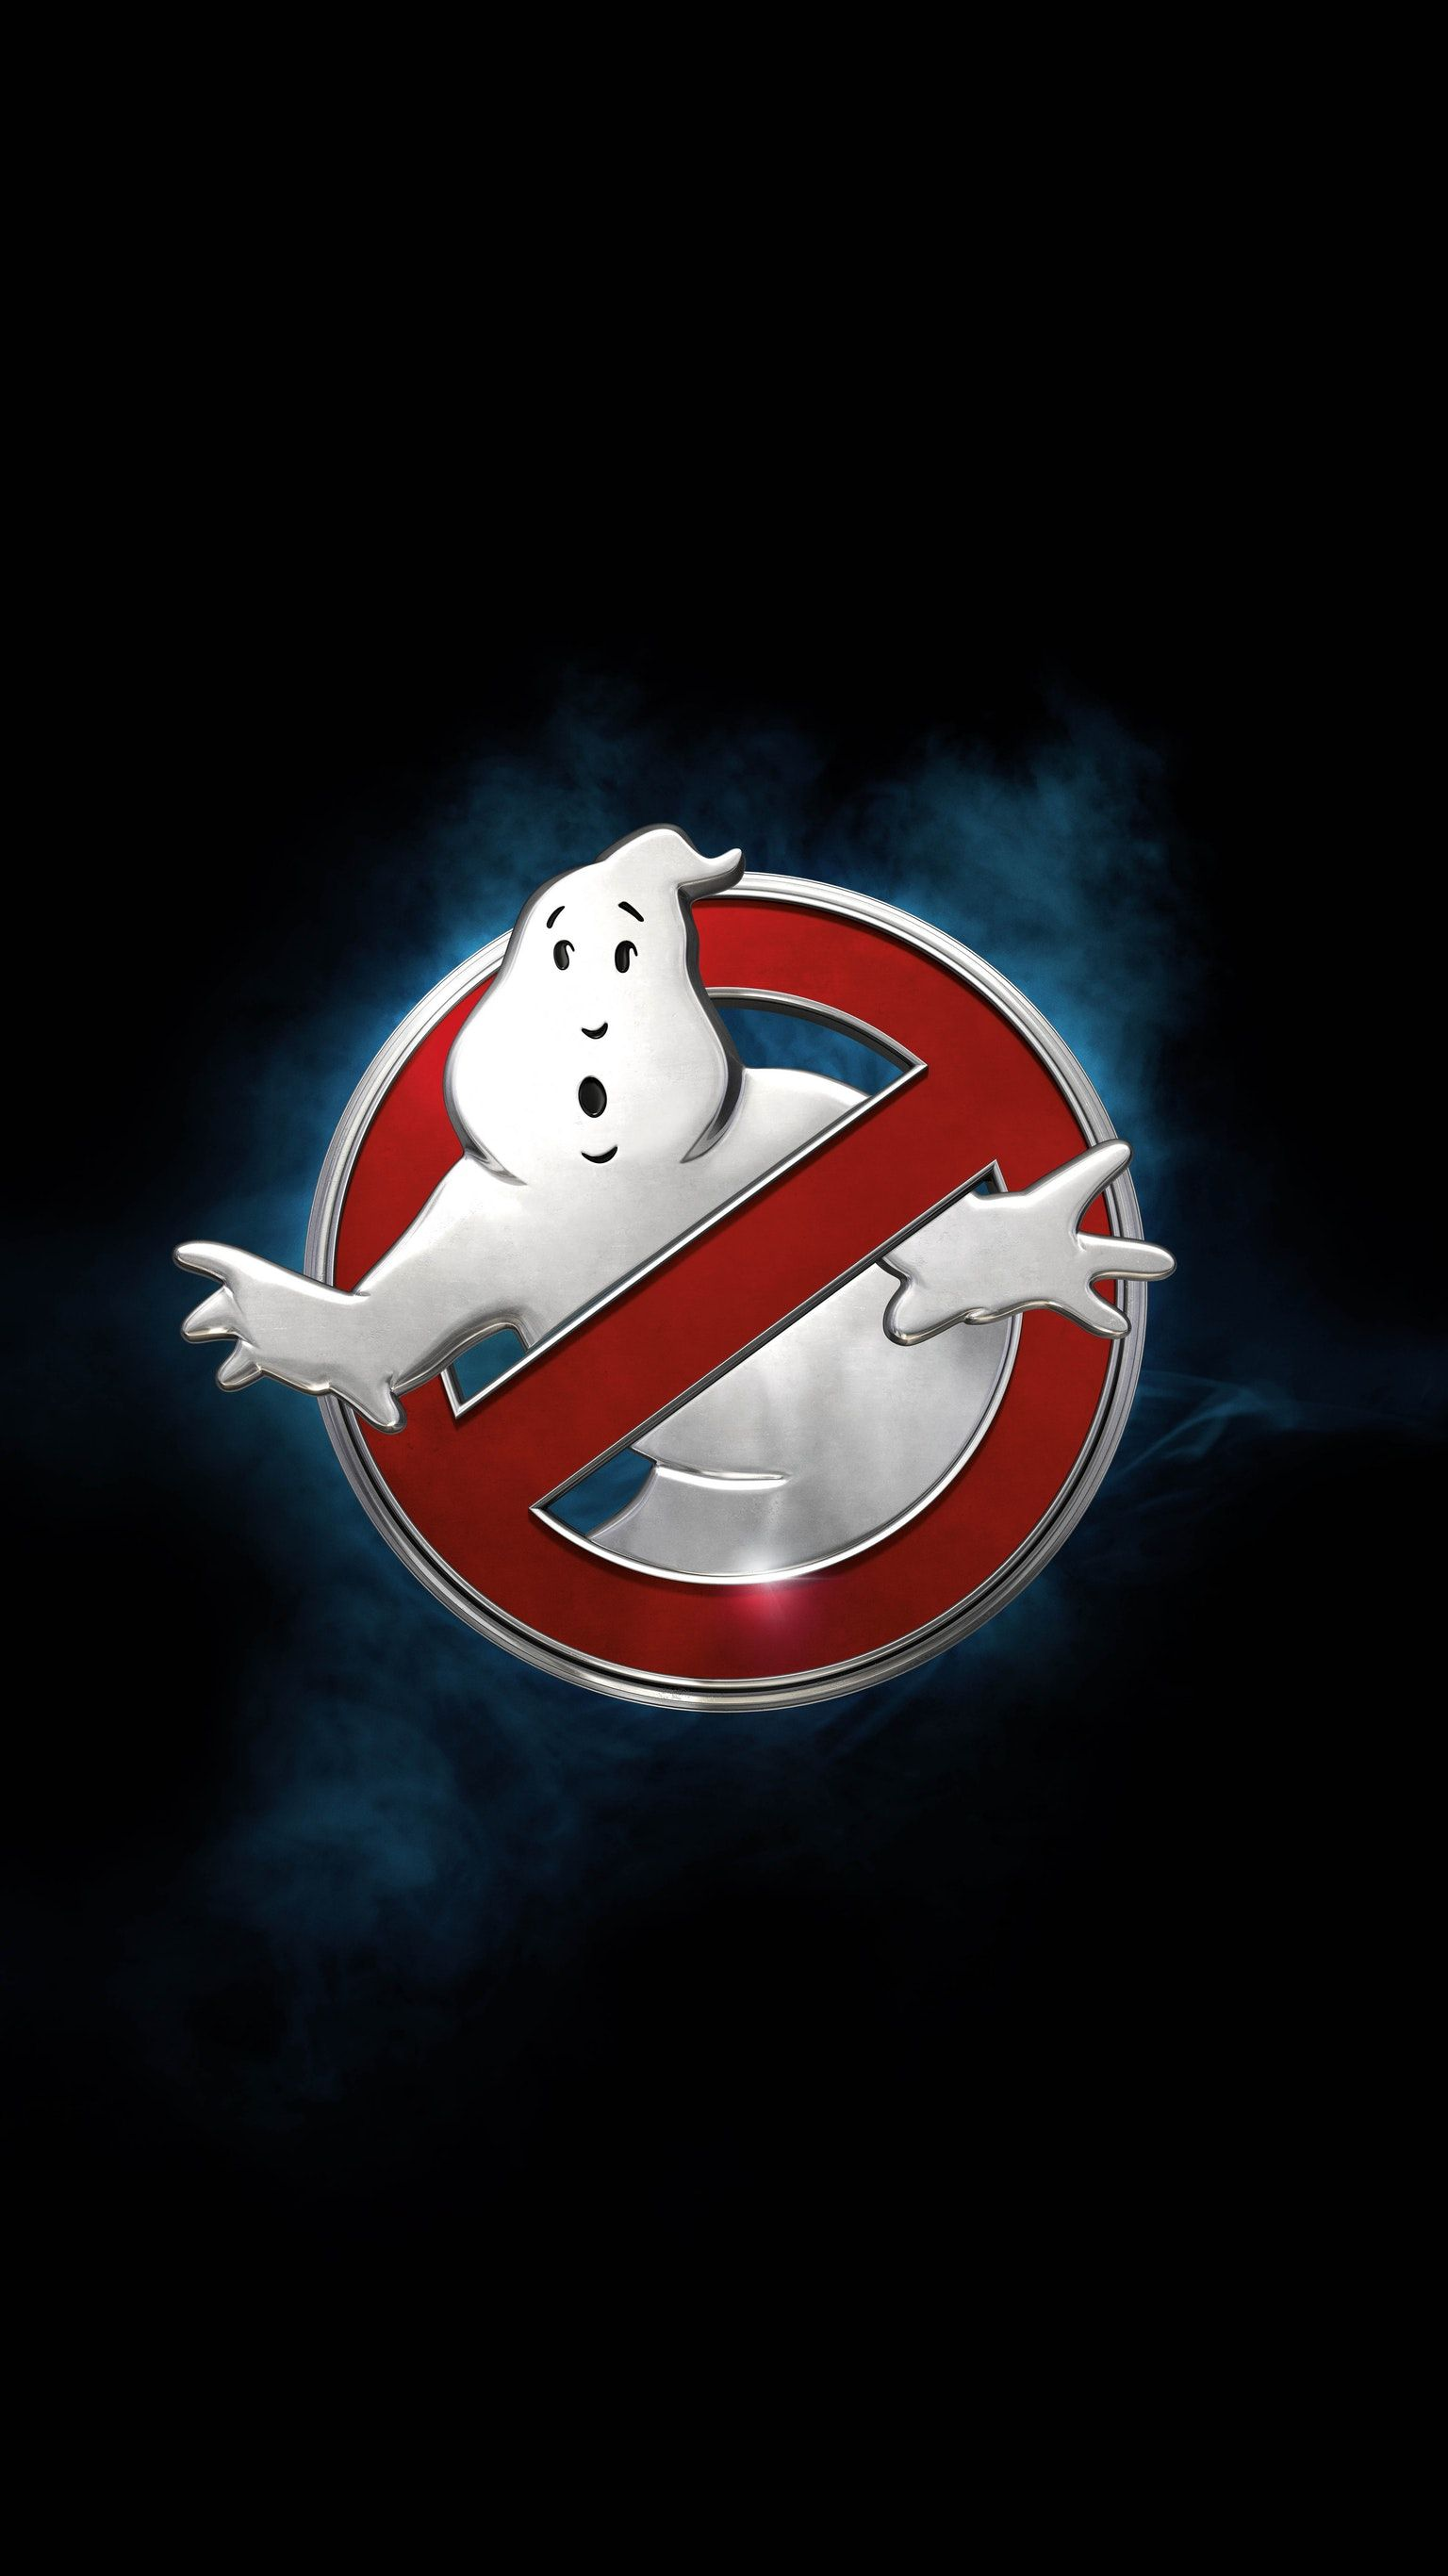 ghostbusters (2016) phone wallpaper | ghostbusters, wallpaper and movie